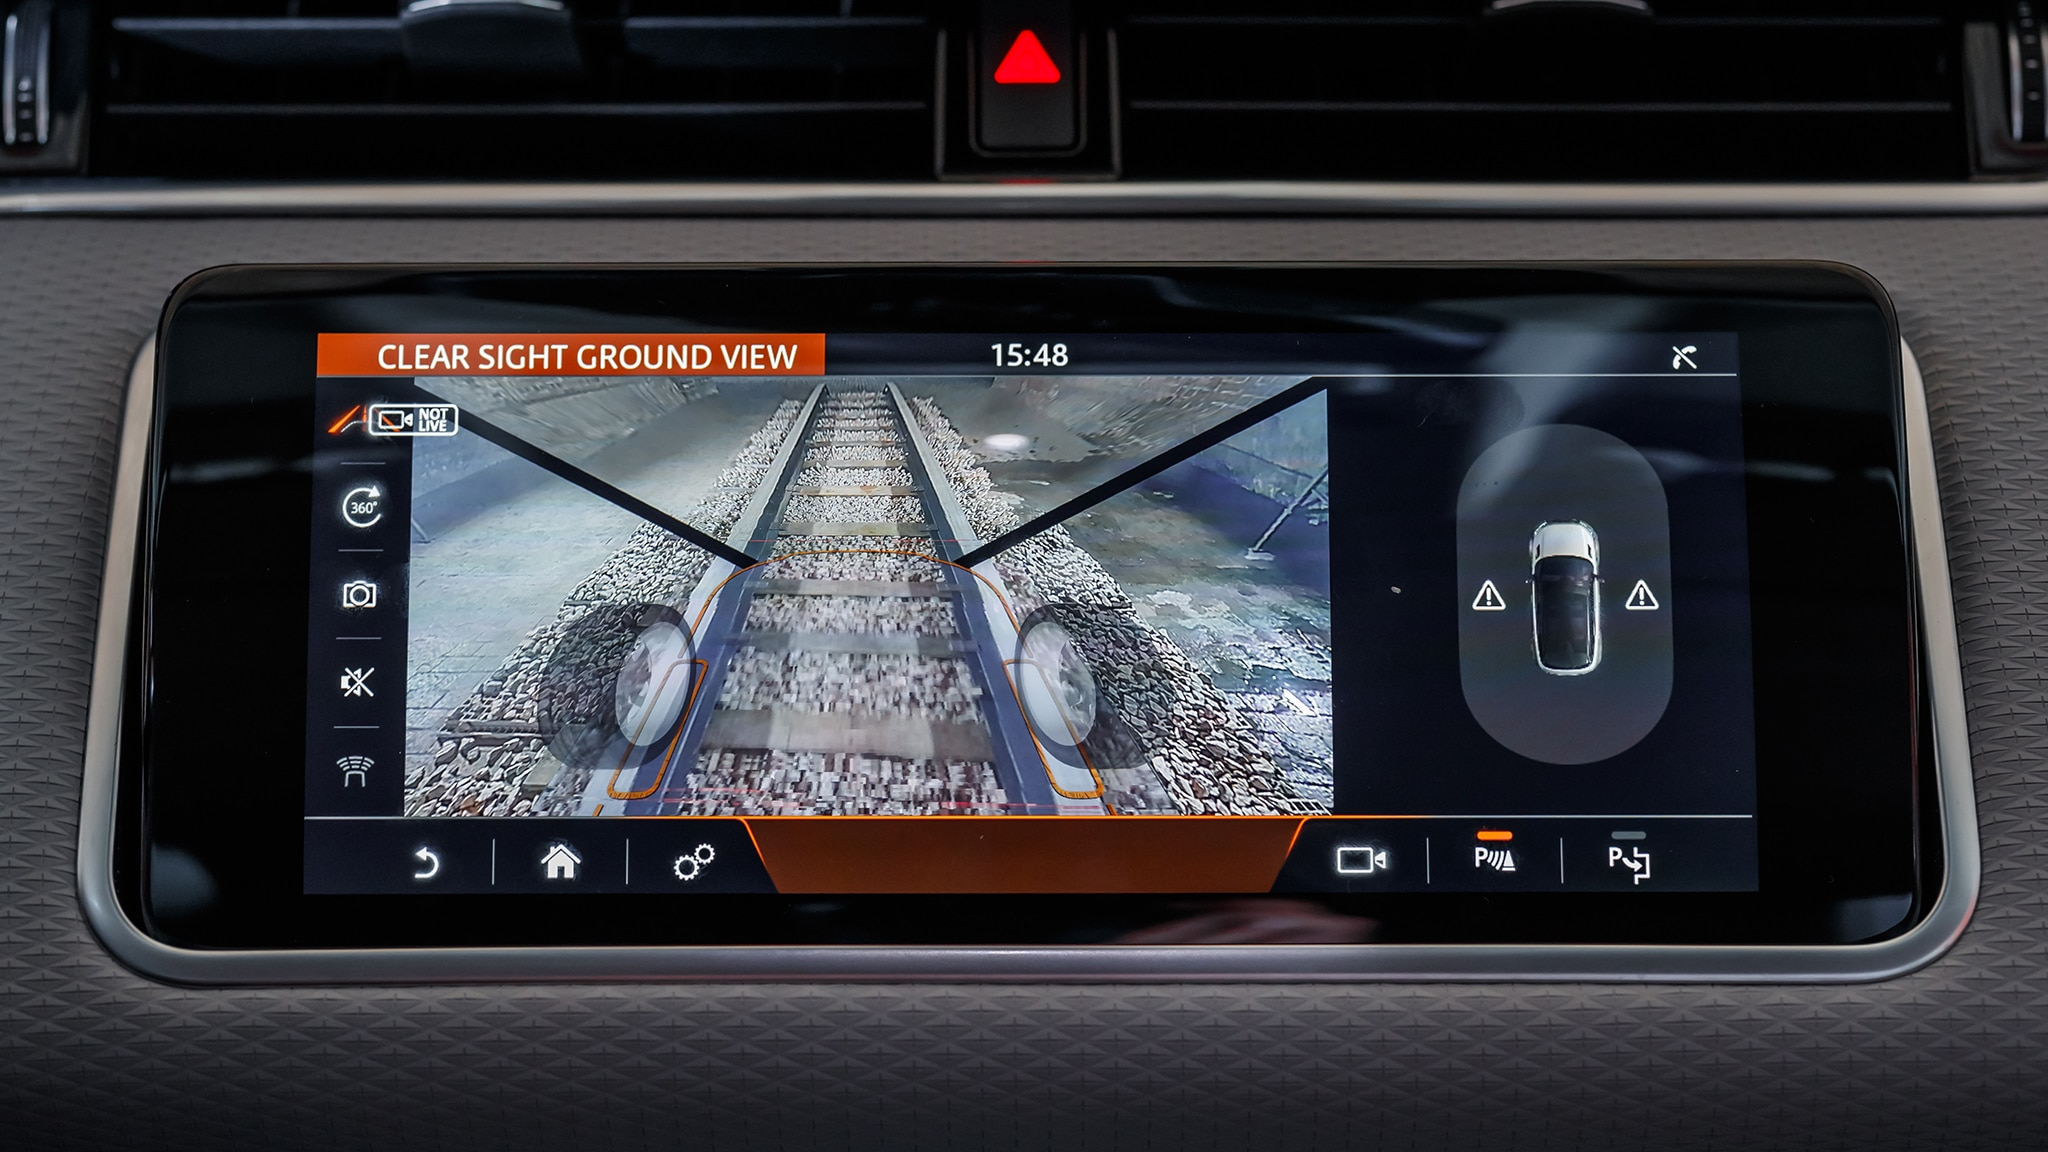 Image result for 2020 range rover evoque clear sight ground view